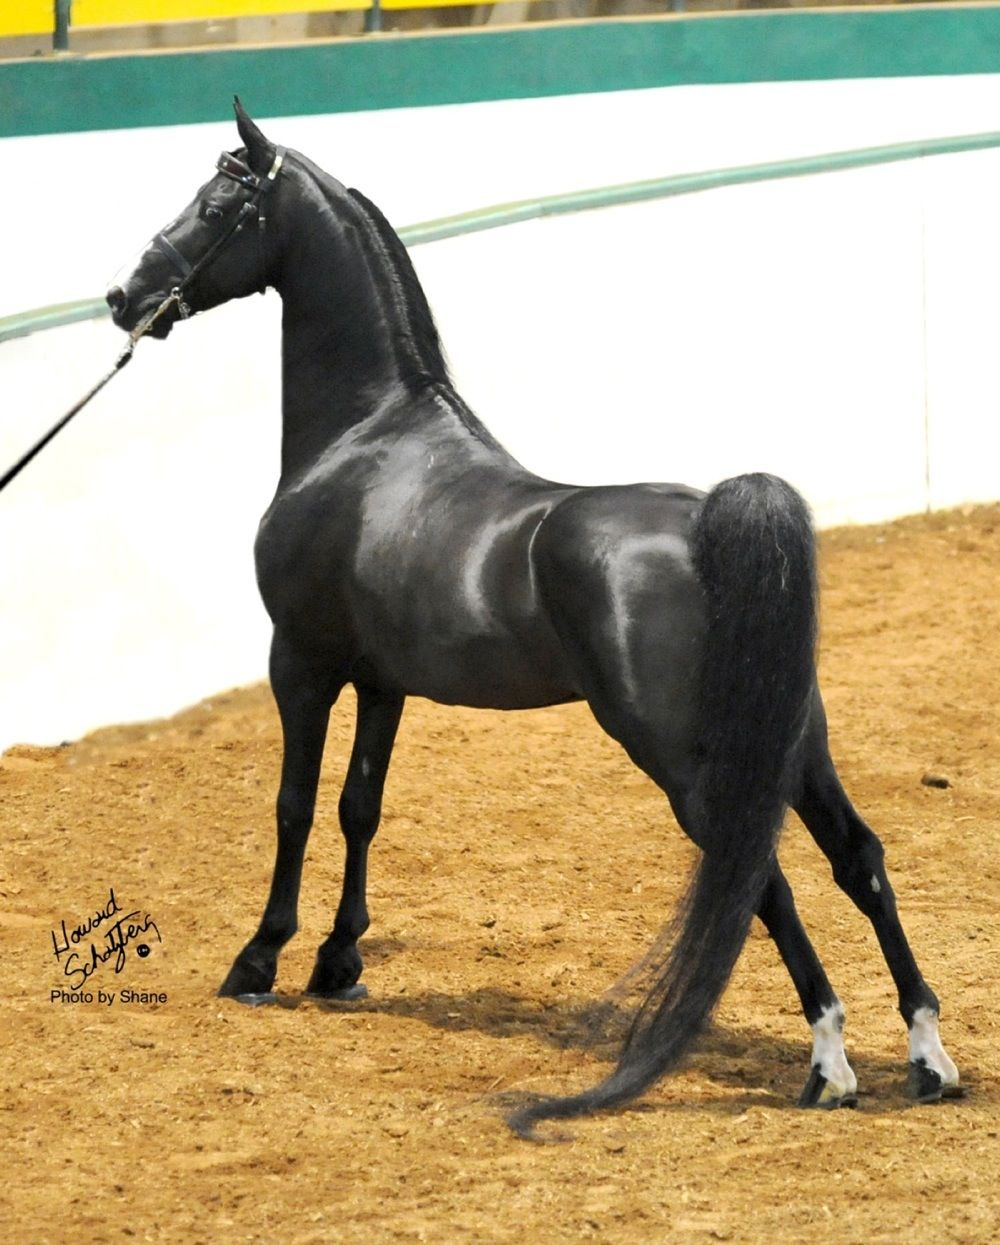 Black Morgan horse...my grandmother, mother and I raised Morgan horses. One day I'll have another